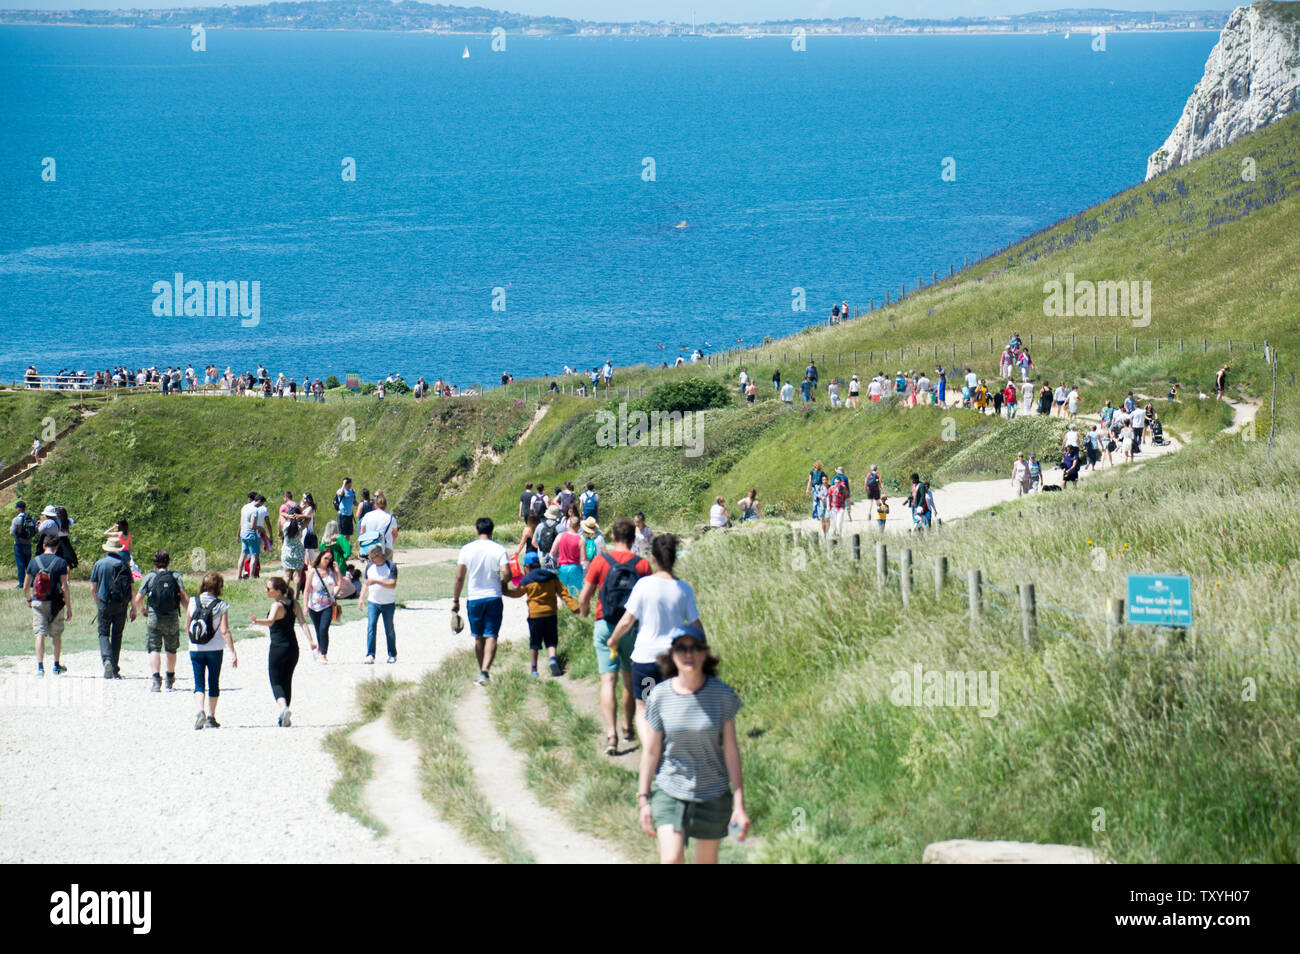 people-descending-down-the-jurassic-coast-to-relax-at-durdle-door-beach-on-hot-summer-day-TXYH07.jpg